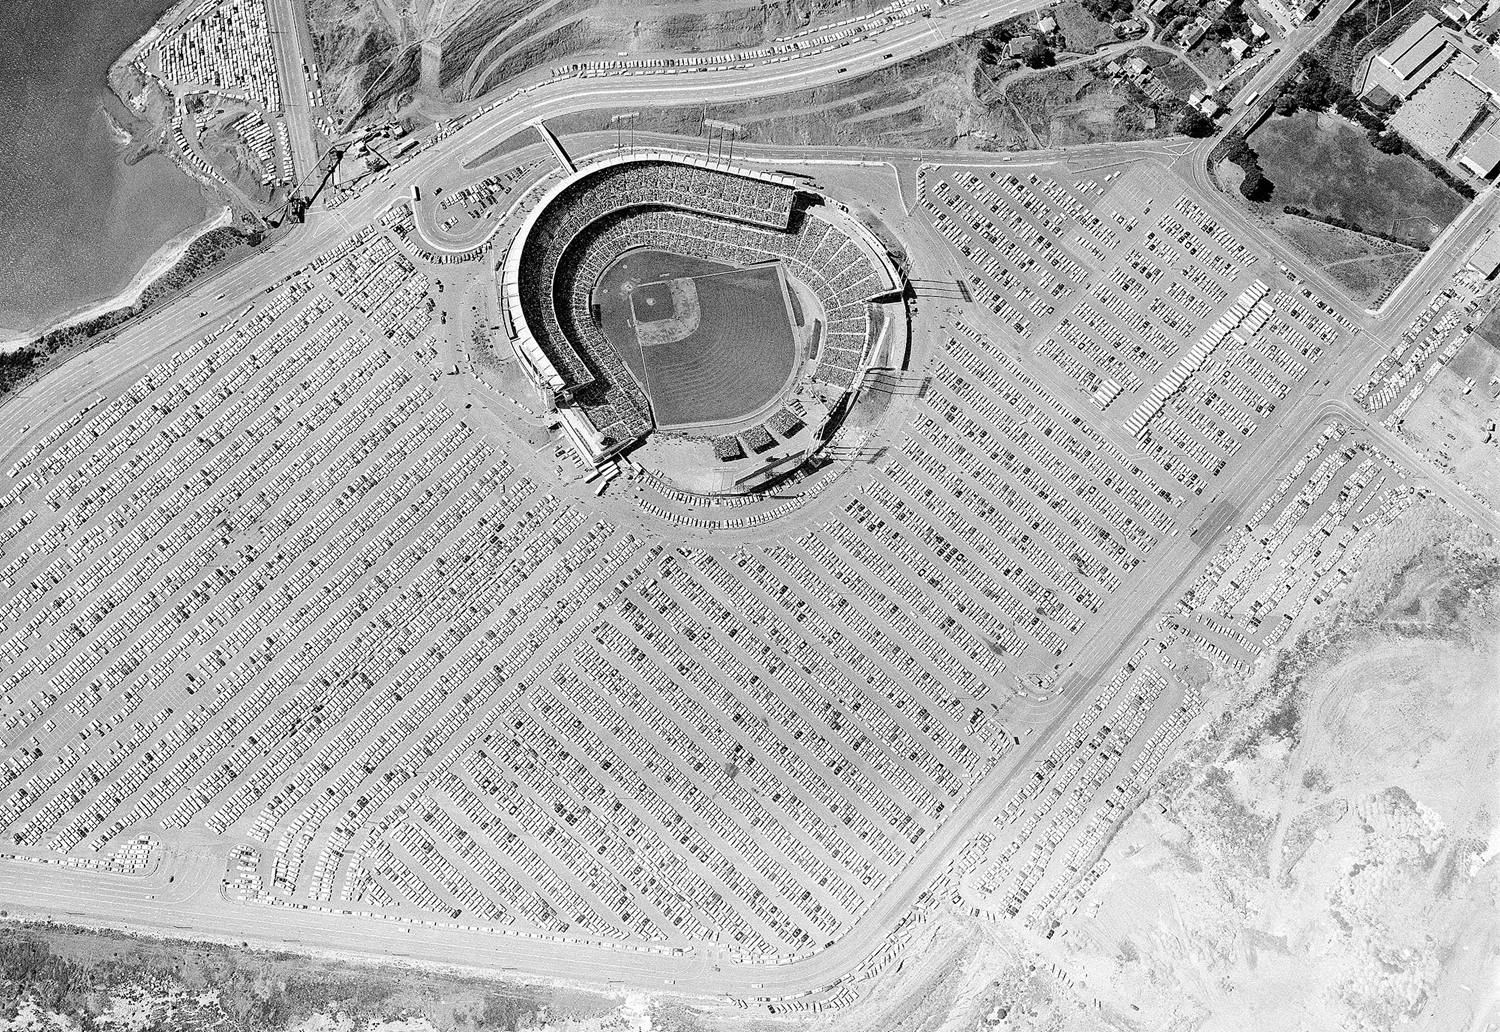 This is how the World Series game between the San Francisco Giants and the New York Yankees looked from the air, on October 4, 1962. A crowd estimated at 45,000 jammed the stadium. New York won, 6-2.